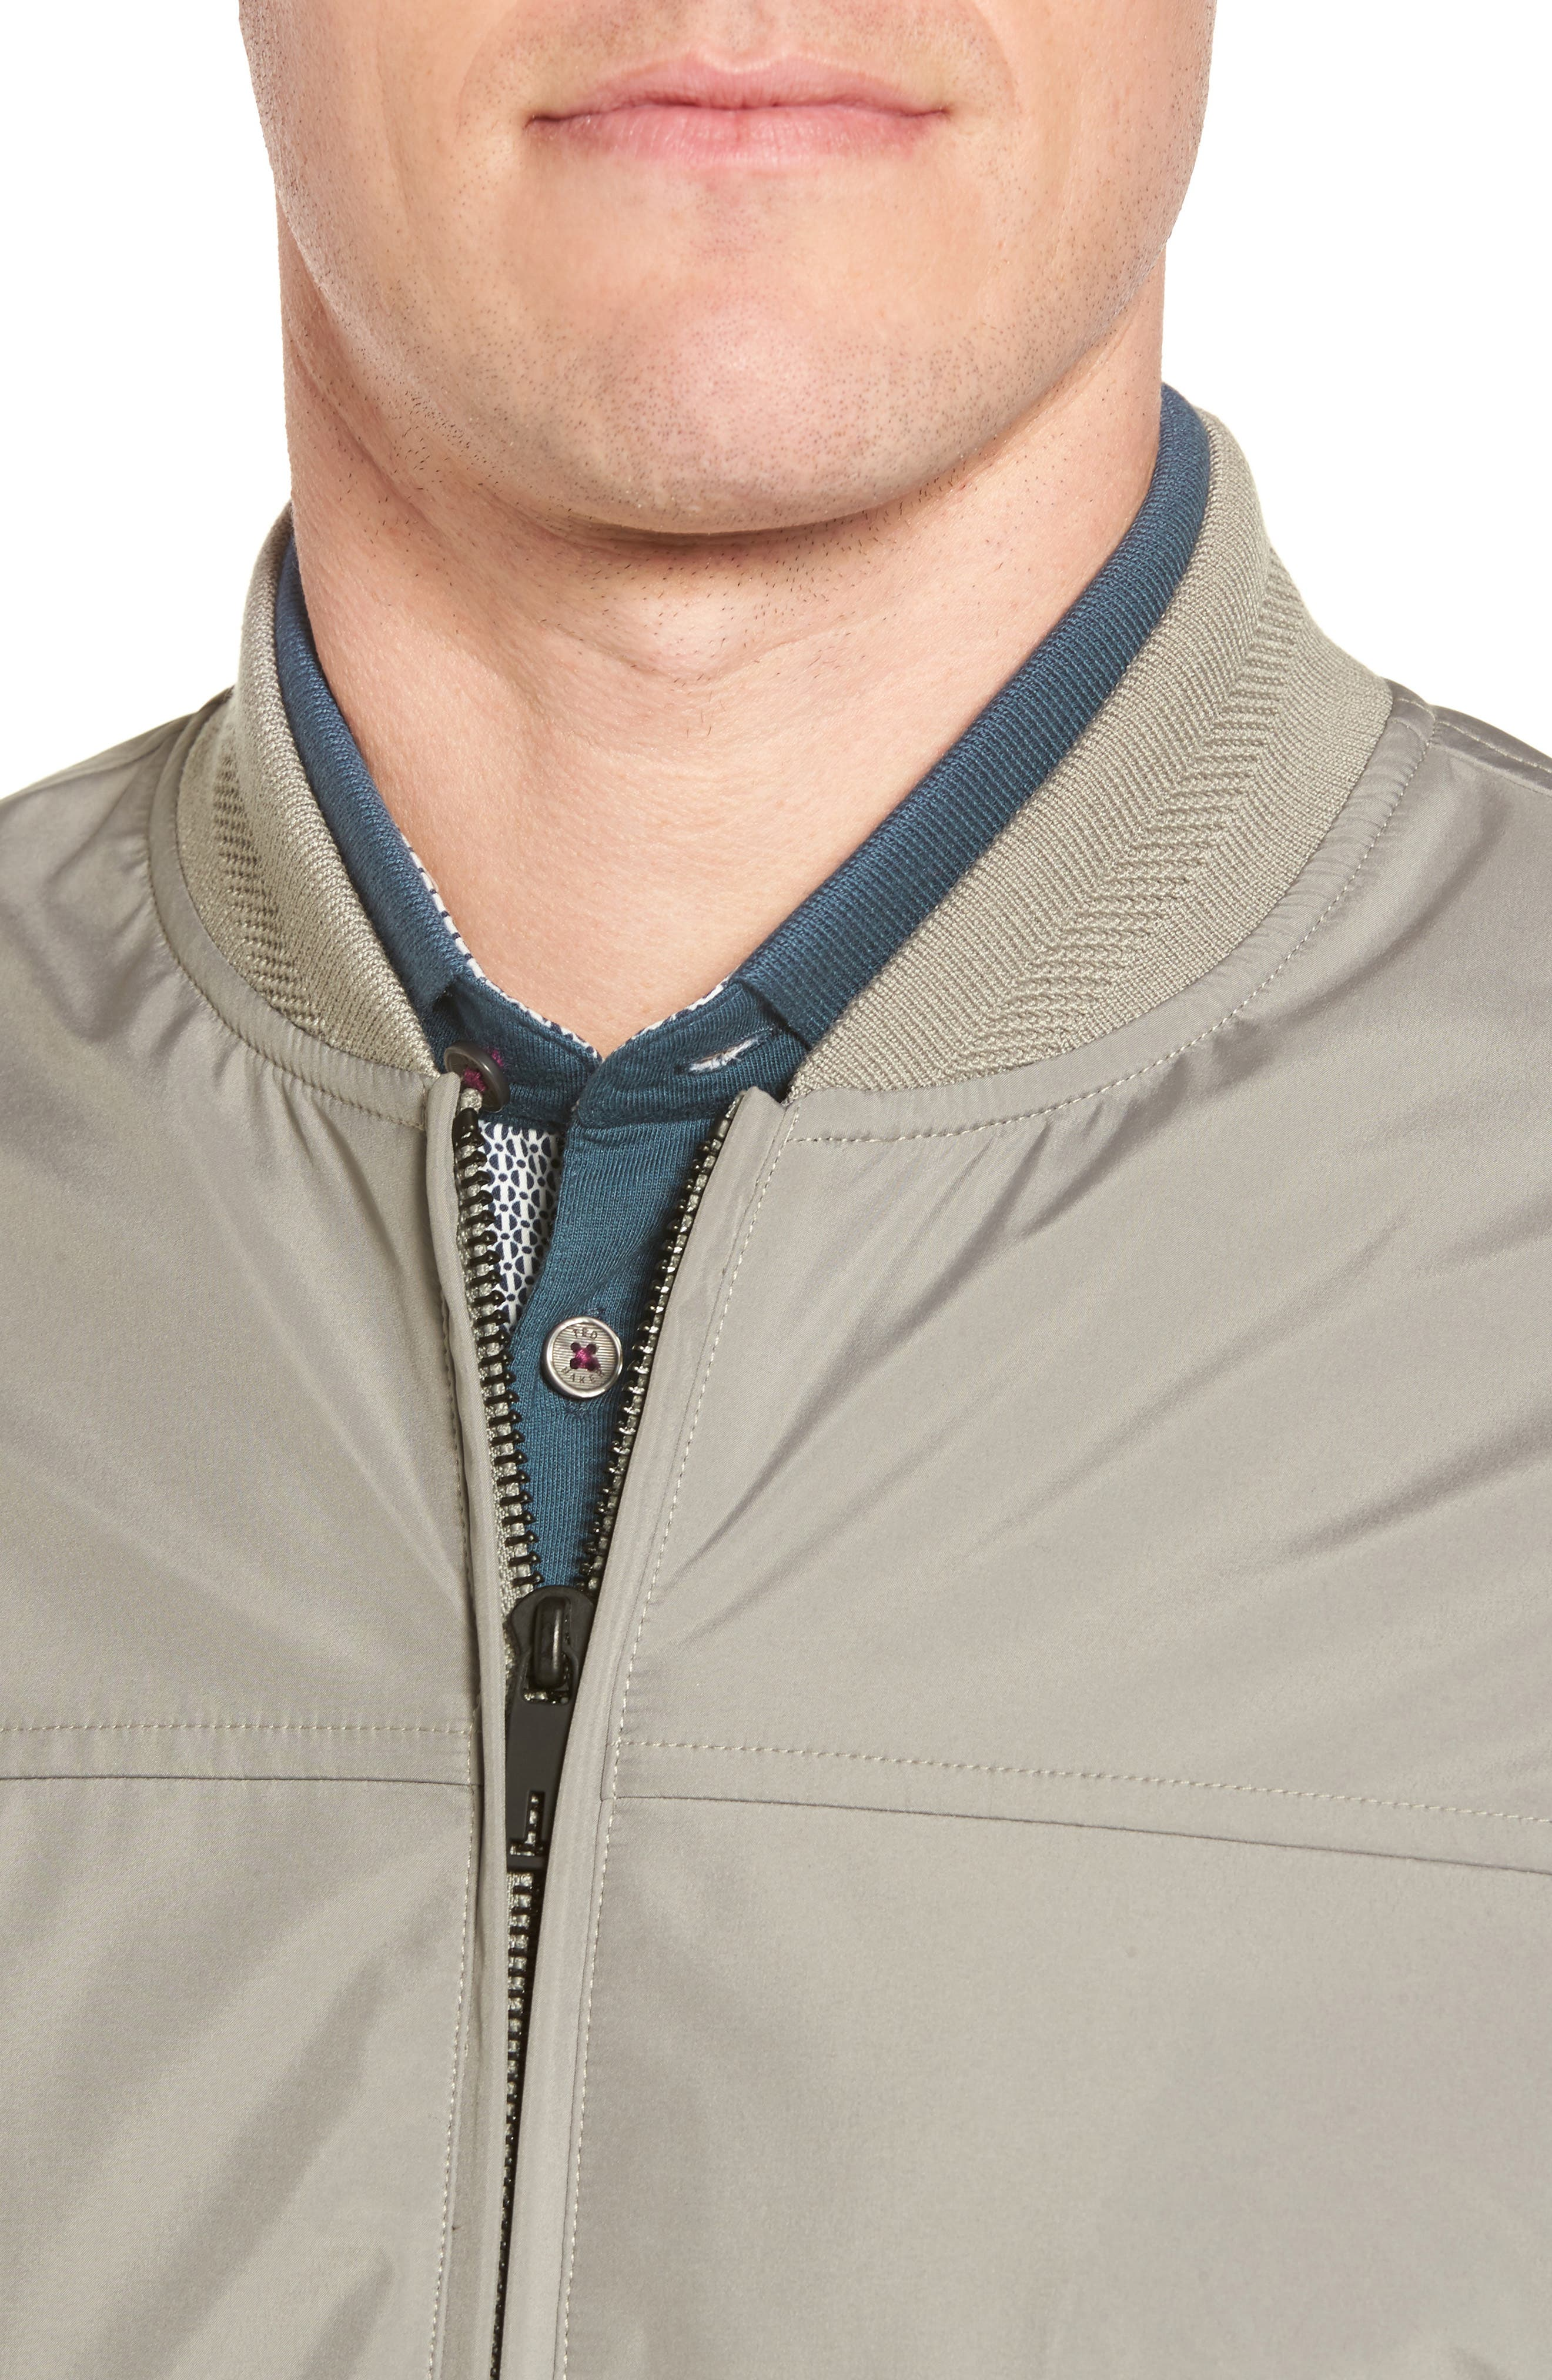 Ohta Bomber Jacket,                             Alternate thumbnail 4, color,                             030